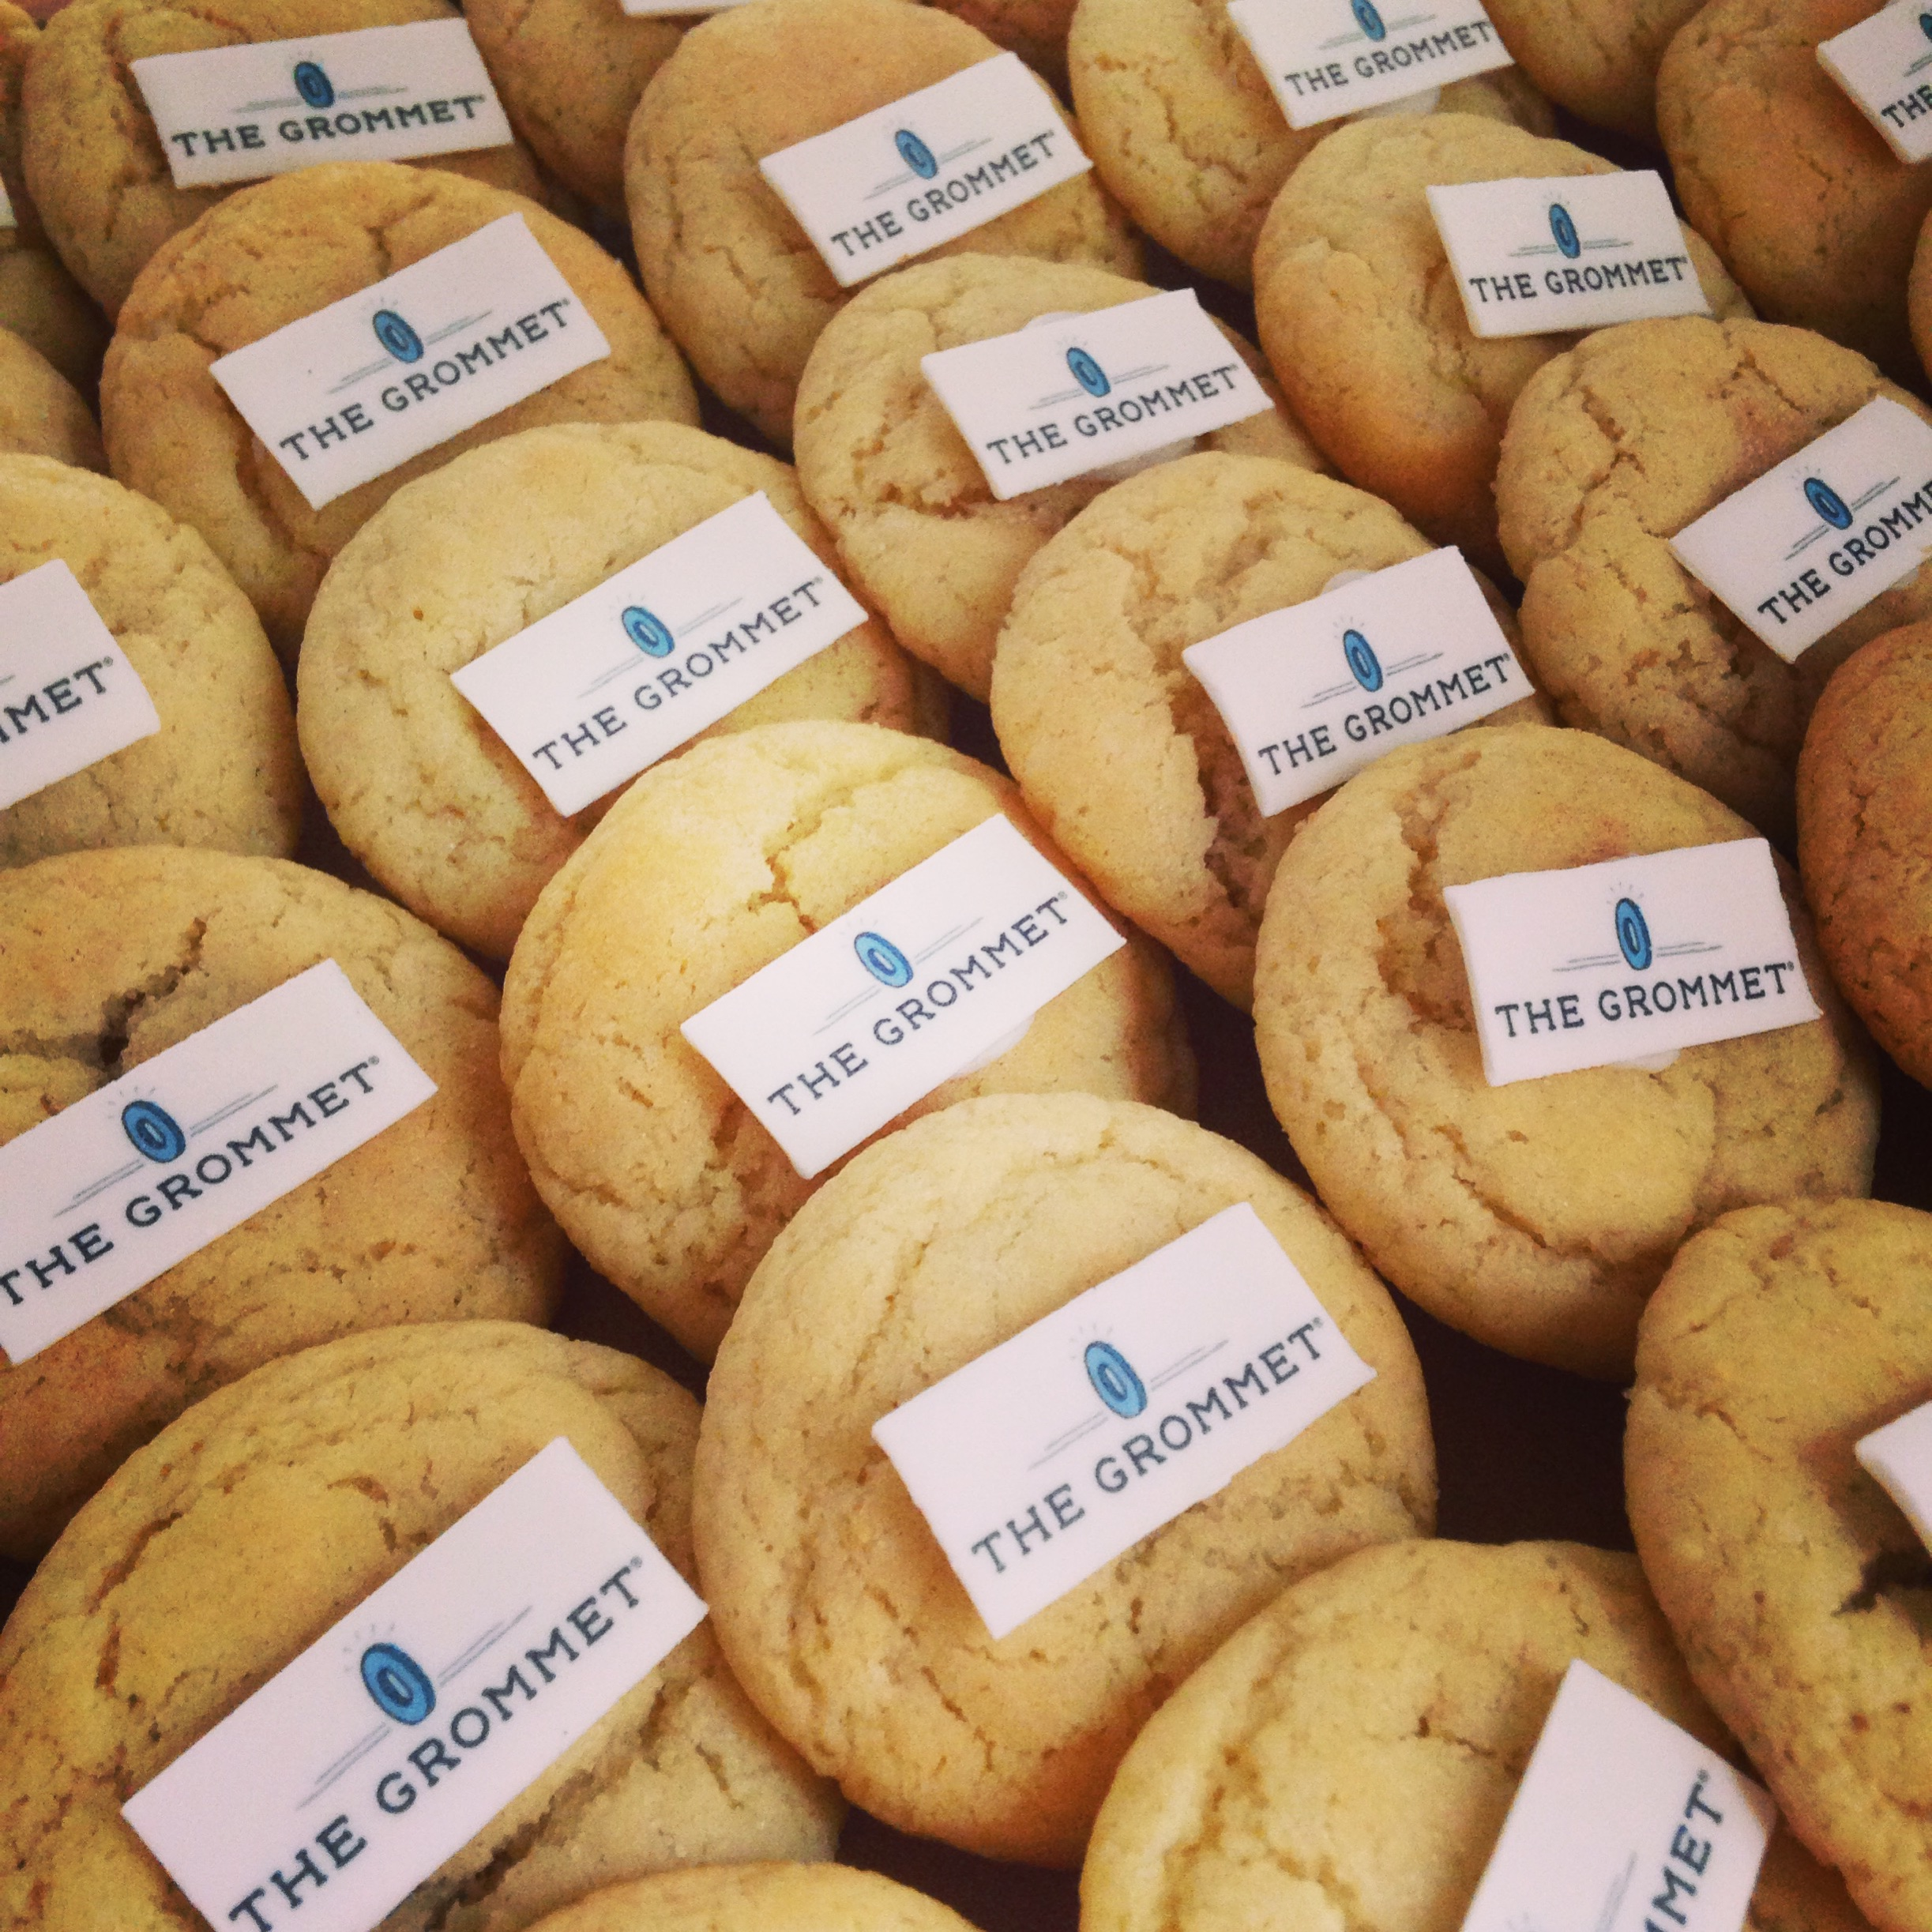 Custom cookies -- we'll print your logo, message, or photo on fondant and affix to any of our signature flavors!